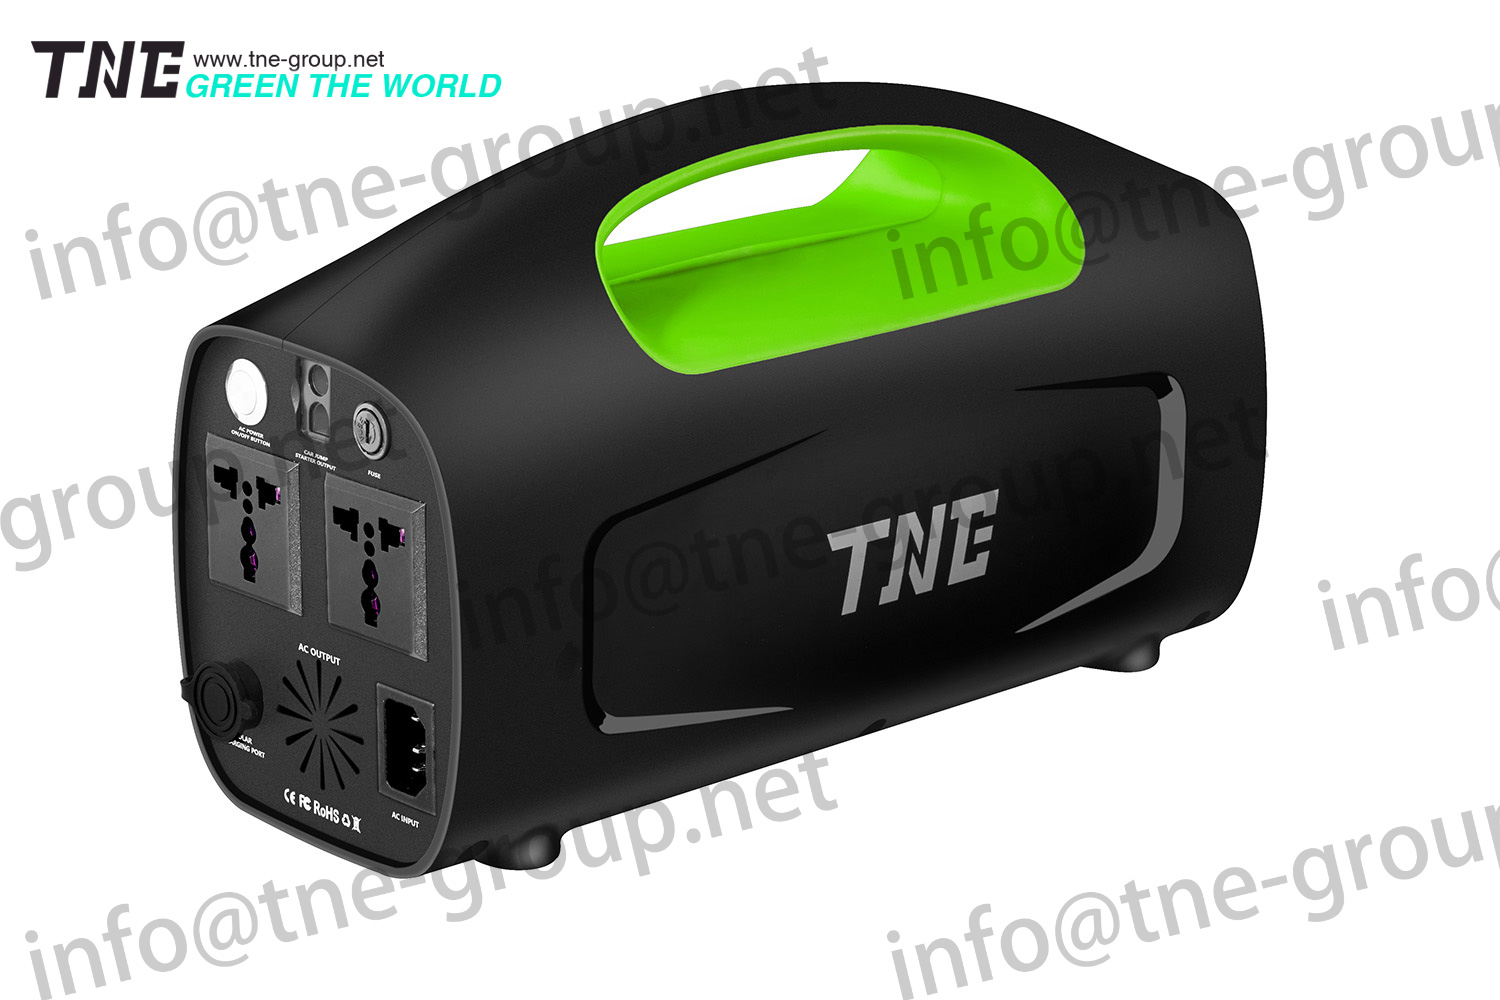 TNE 480VAC parallel redundency function back-up UPS for industry